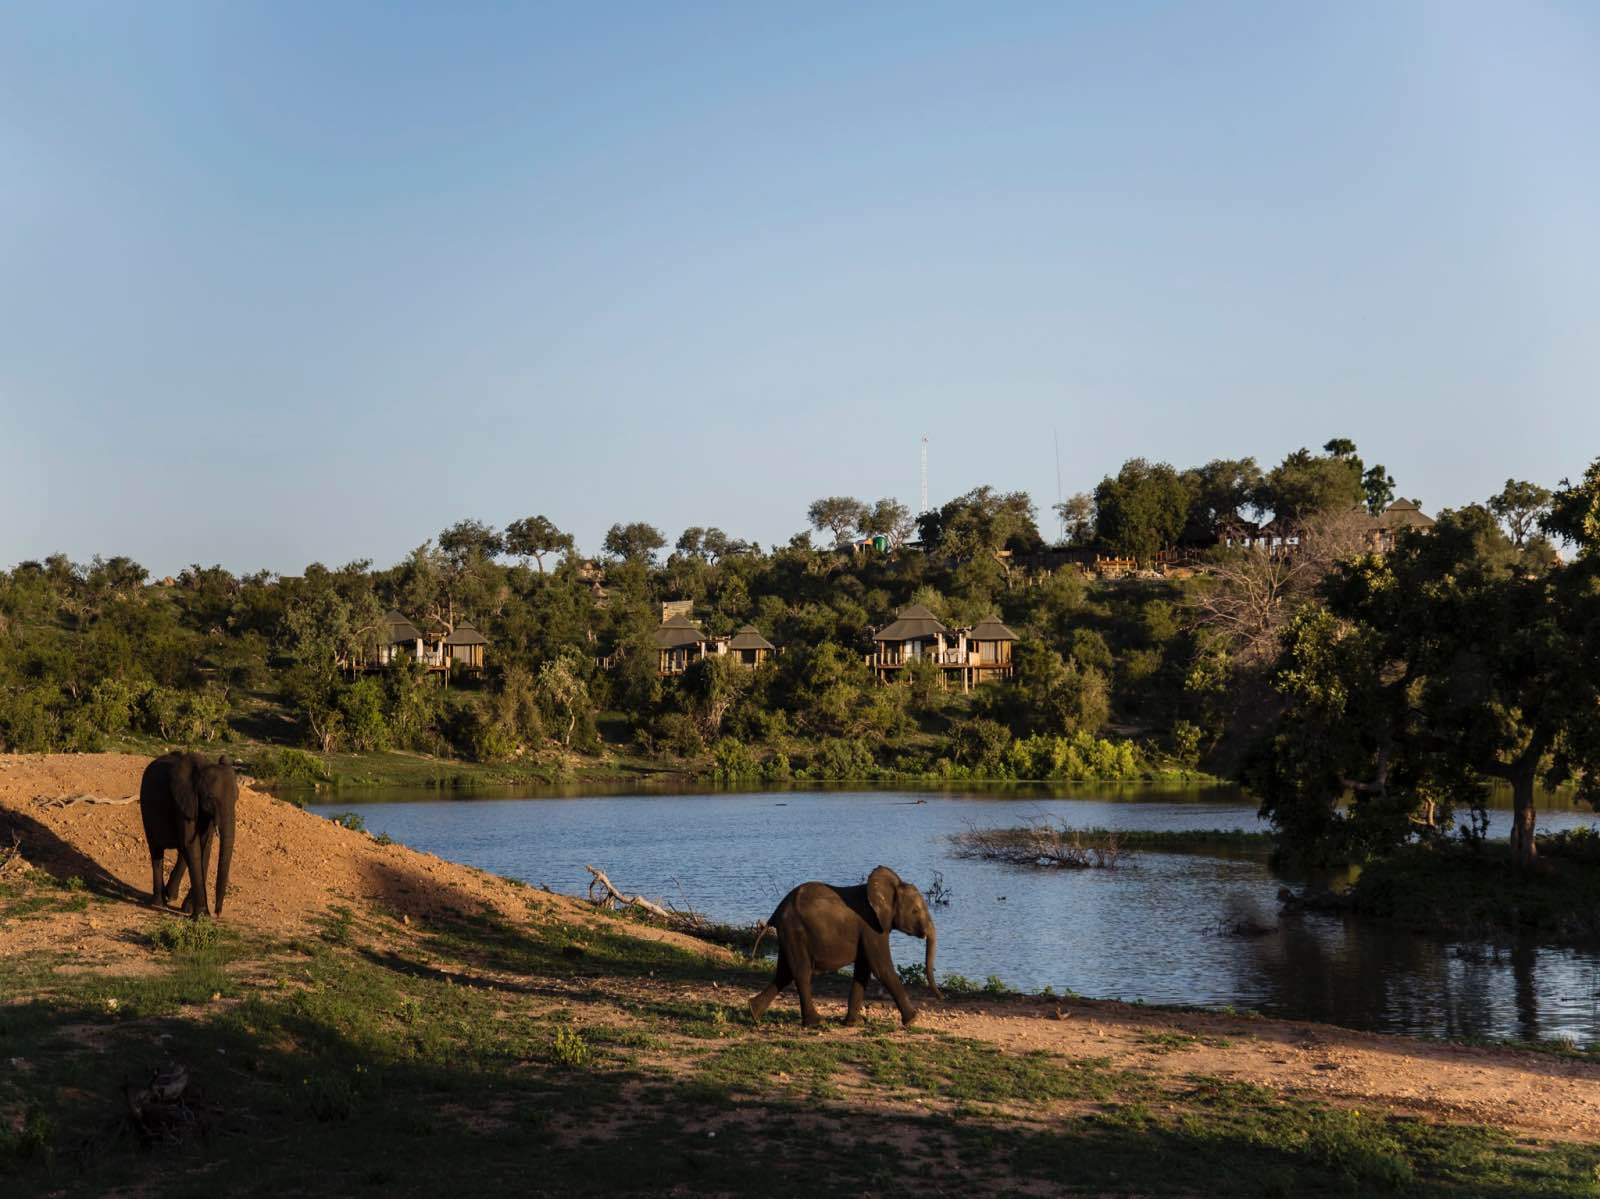 Simbavati Hilltop Lodge positioned between the trees on the raised koppie overlooking the water and elephants